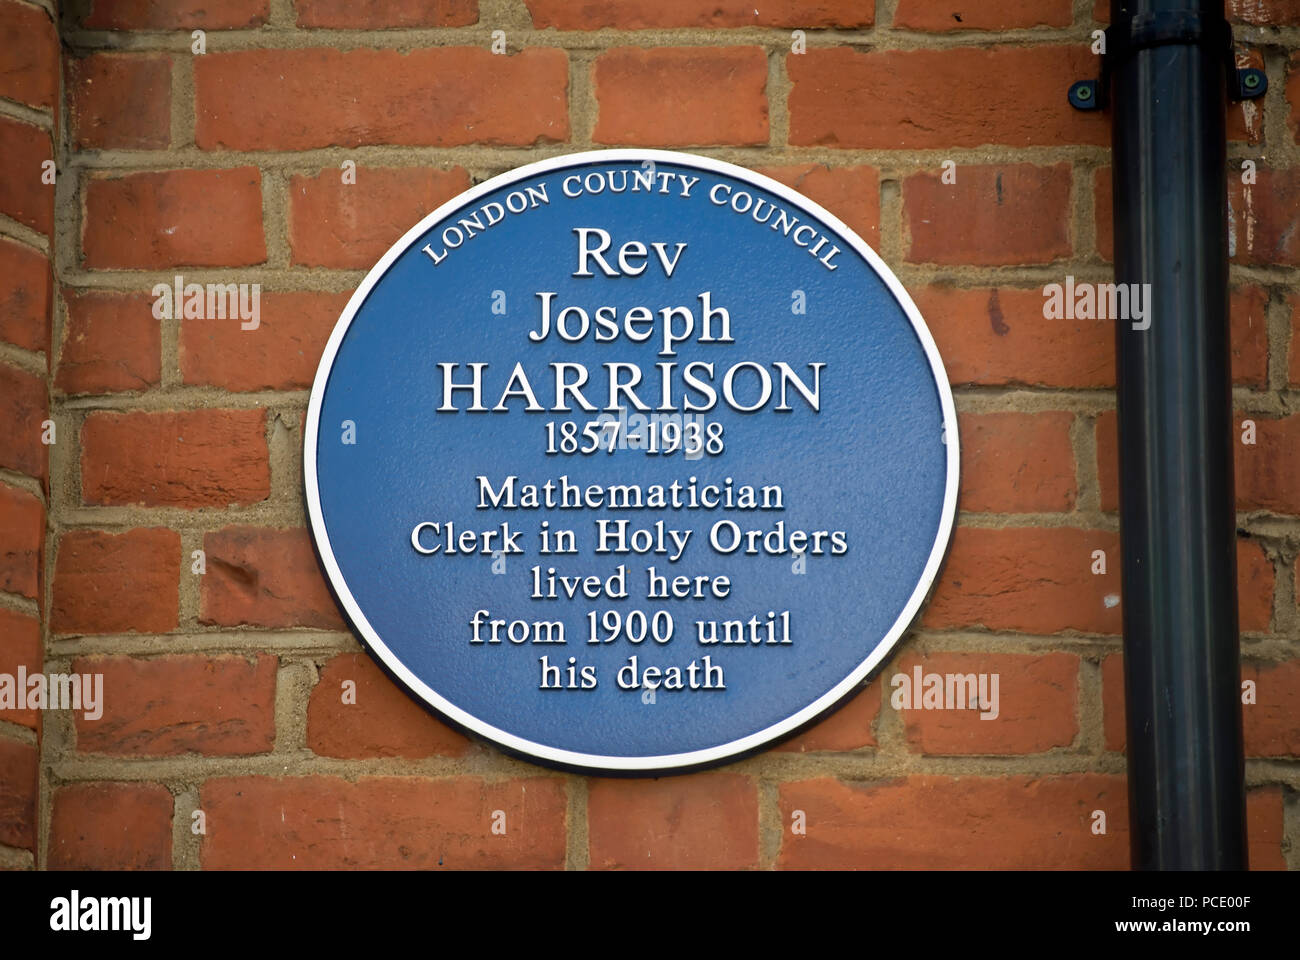 london county council blue plaque marking a home of the reverend joseph harrison, mathematician and clerk in holy orders, in ealing, london, england - Stock Image